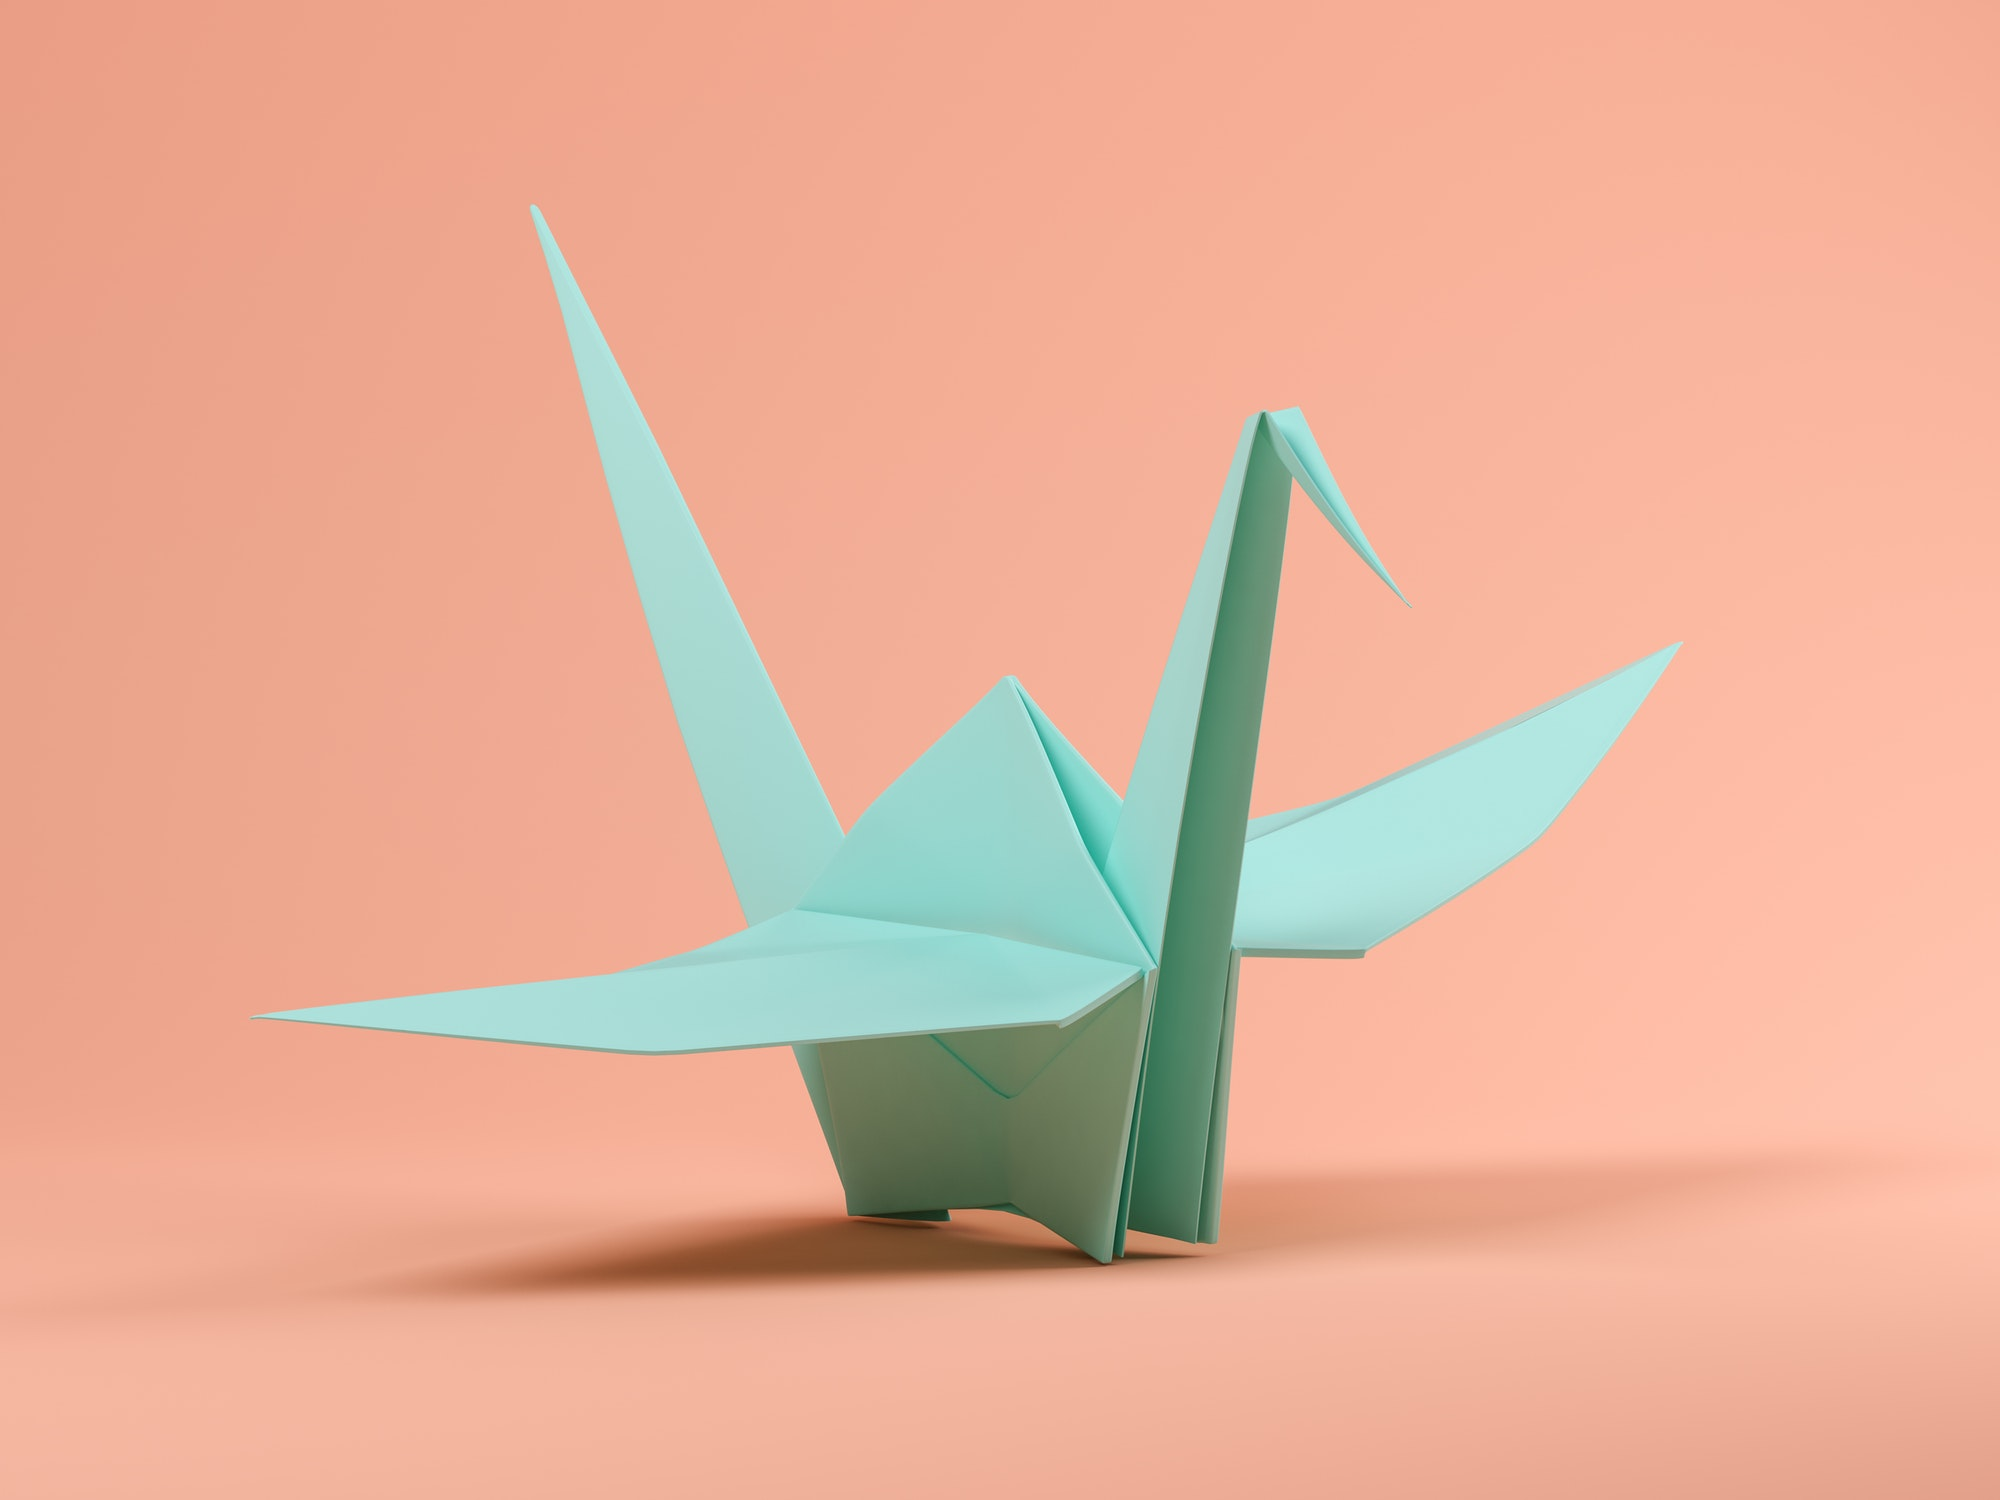 Blue origami on pink background 3D illustration